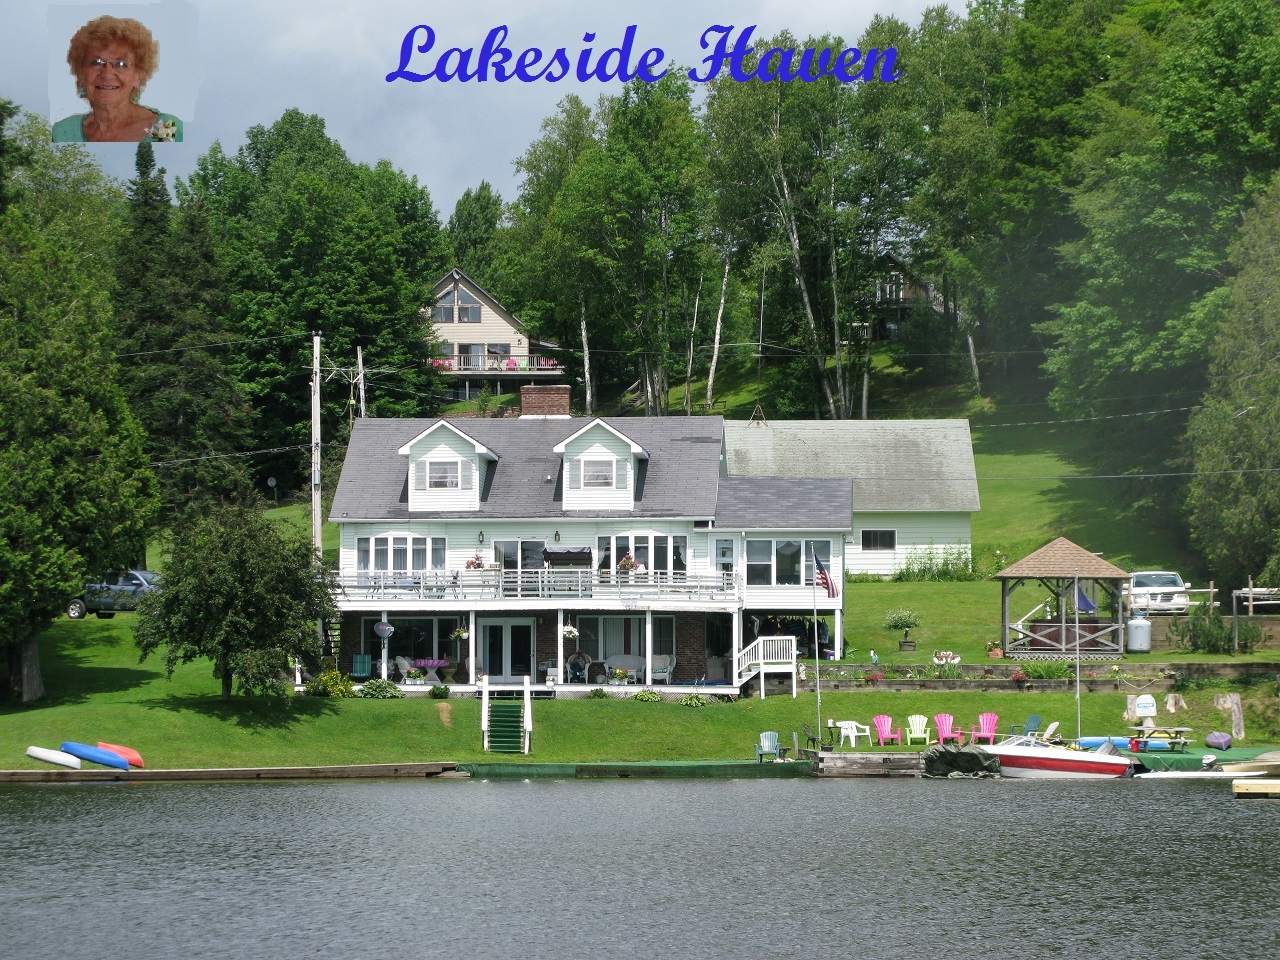 Lakeside haven